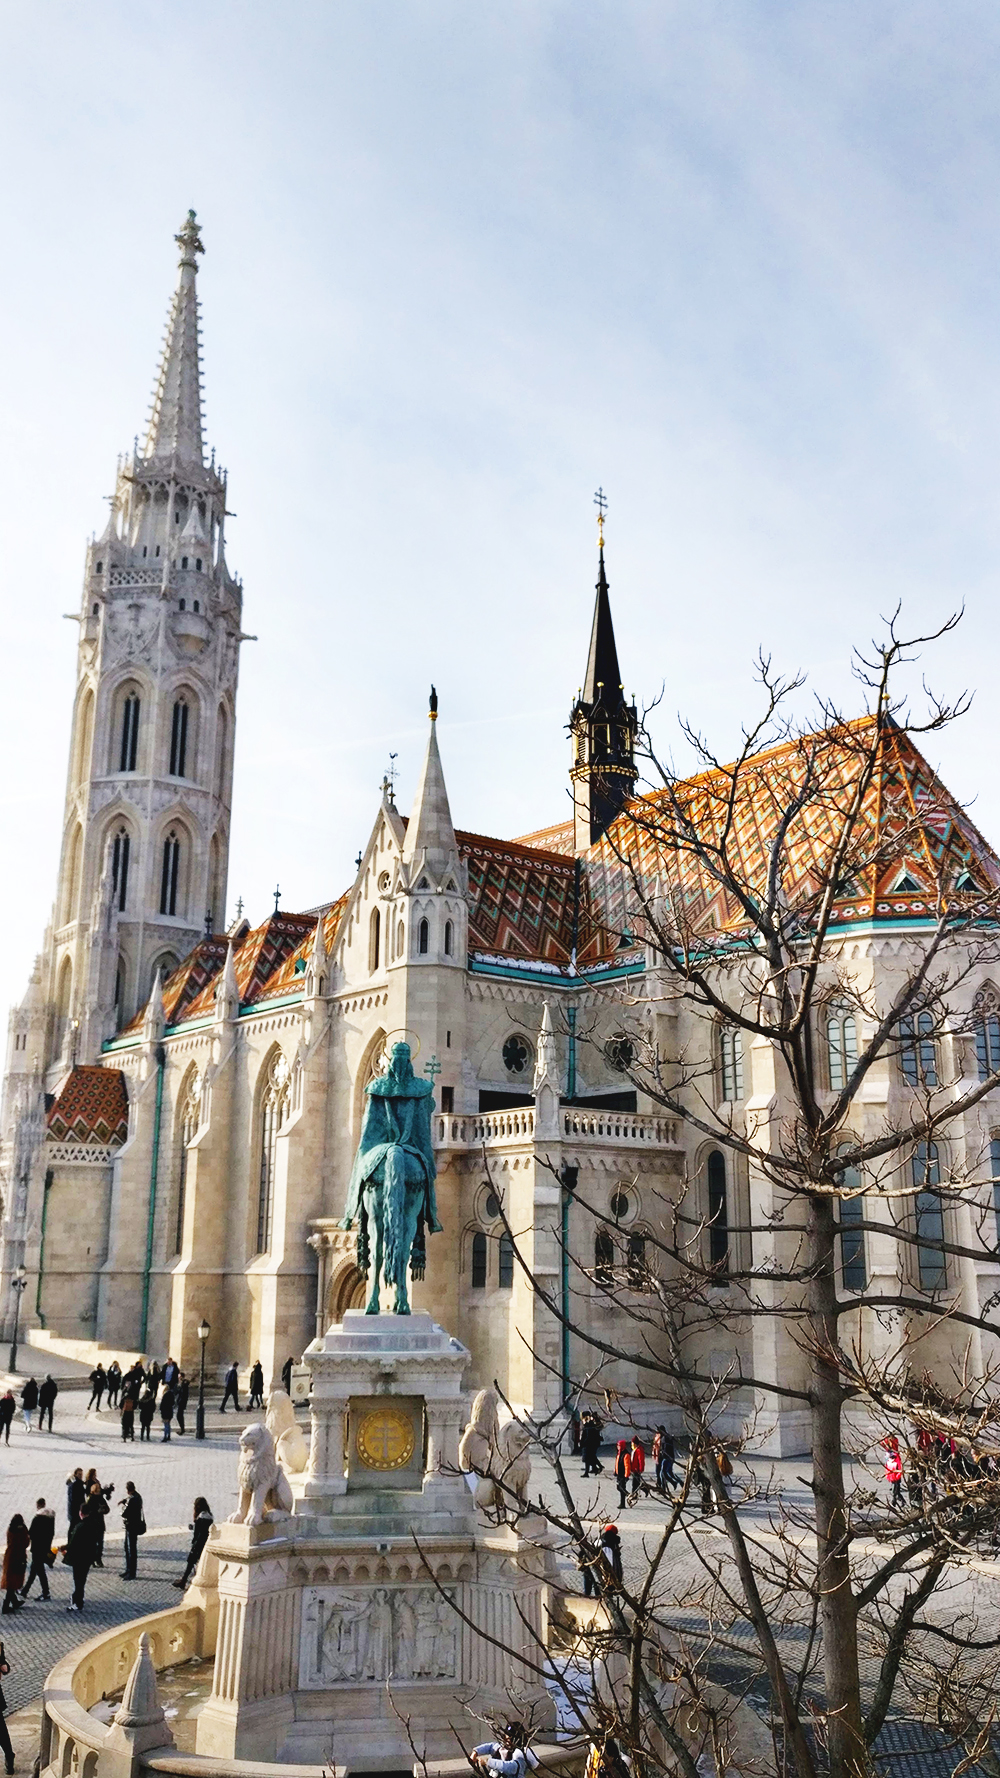 Wander around Castle District, Matthias Church - Budapest bucket list - Top things to do in Budapest | Aliz's Wonderland #travel #Budapest #bucketlist #Budapestbucketlist #printable